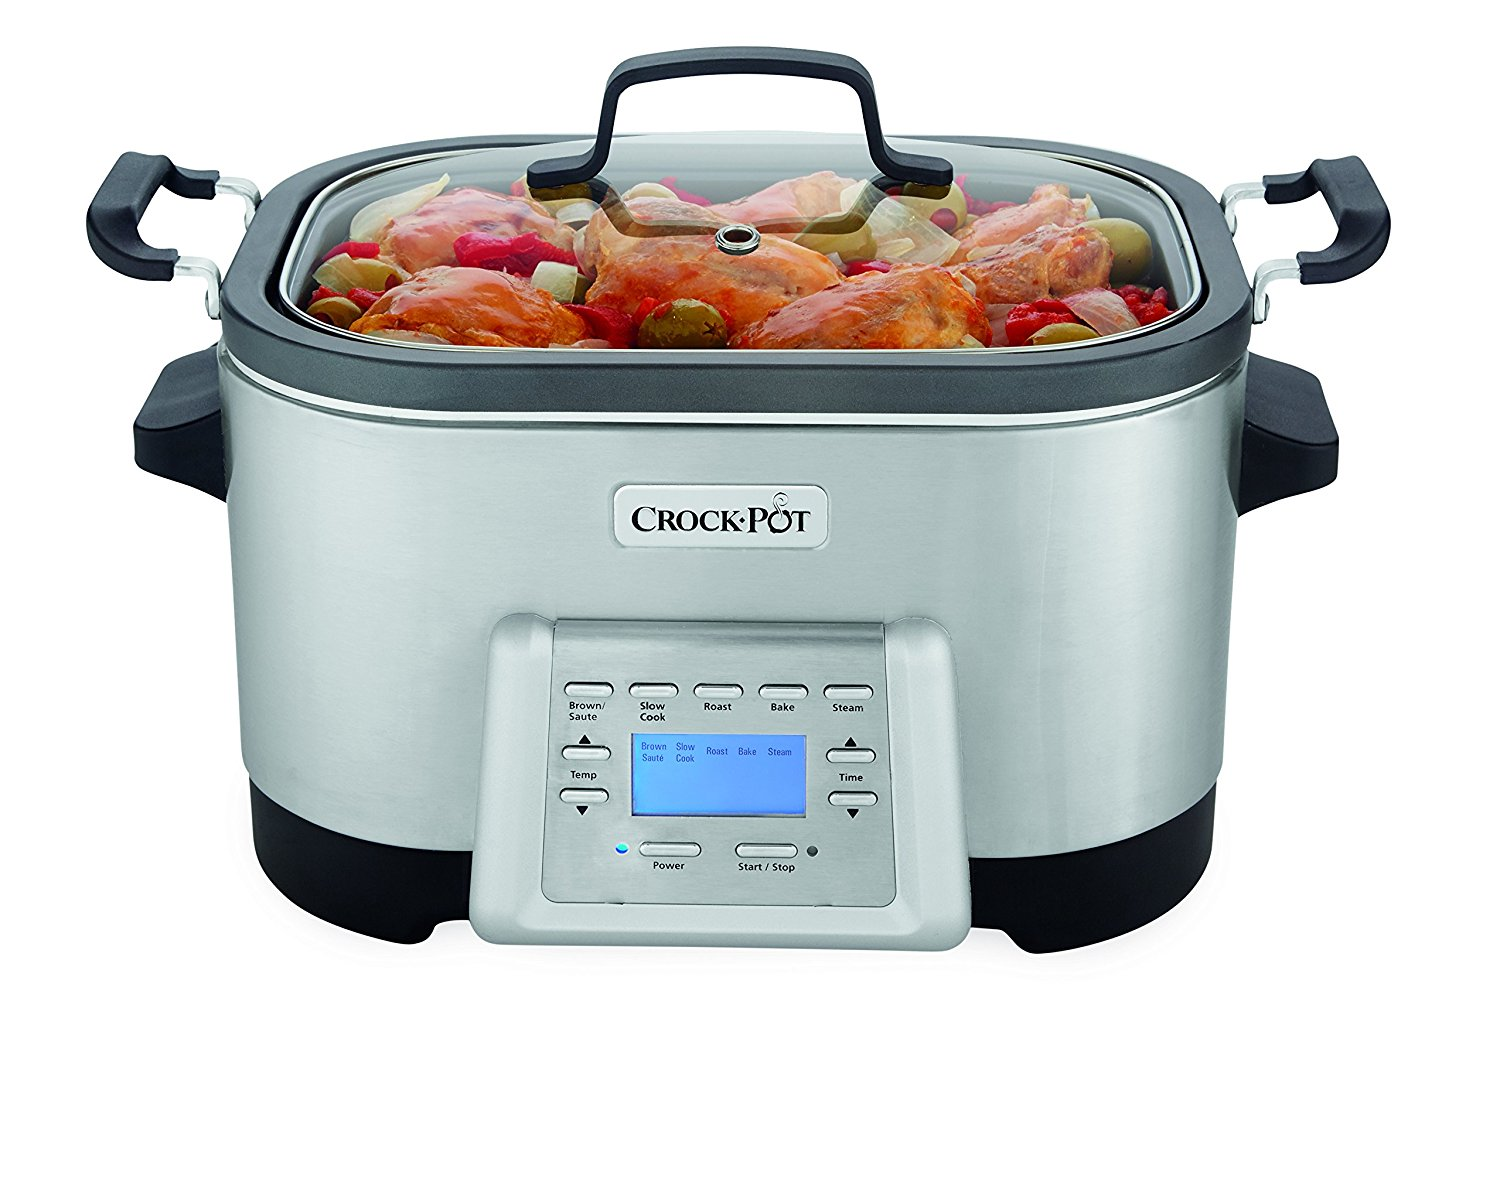 Crock-Pot 6-Quart 5-in-1 Multi-Cooker with Non-Stick Inner Pot, Stainless Steel